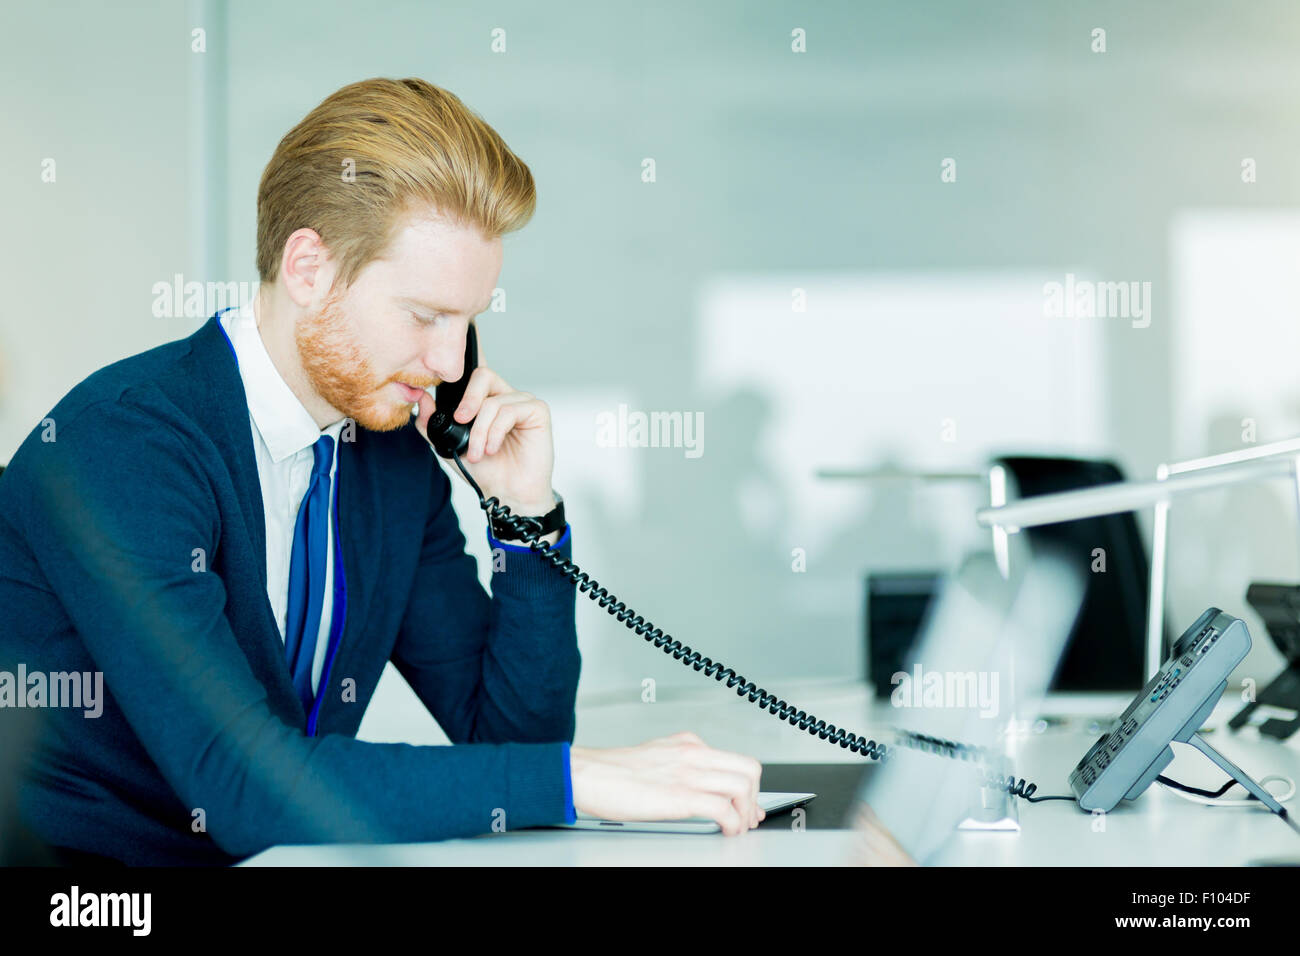 A handsome male, red haired worker in a call center office talking on a phone - Stock Image